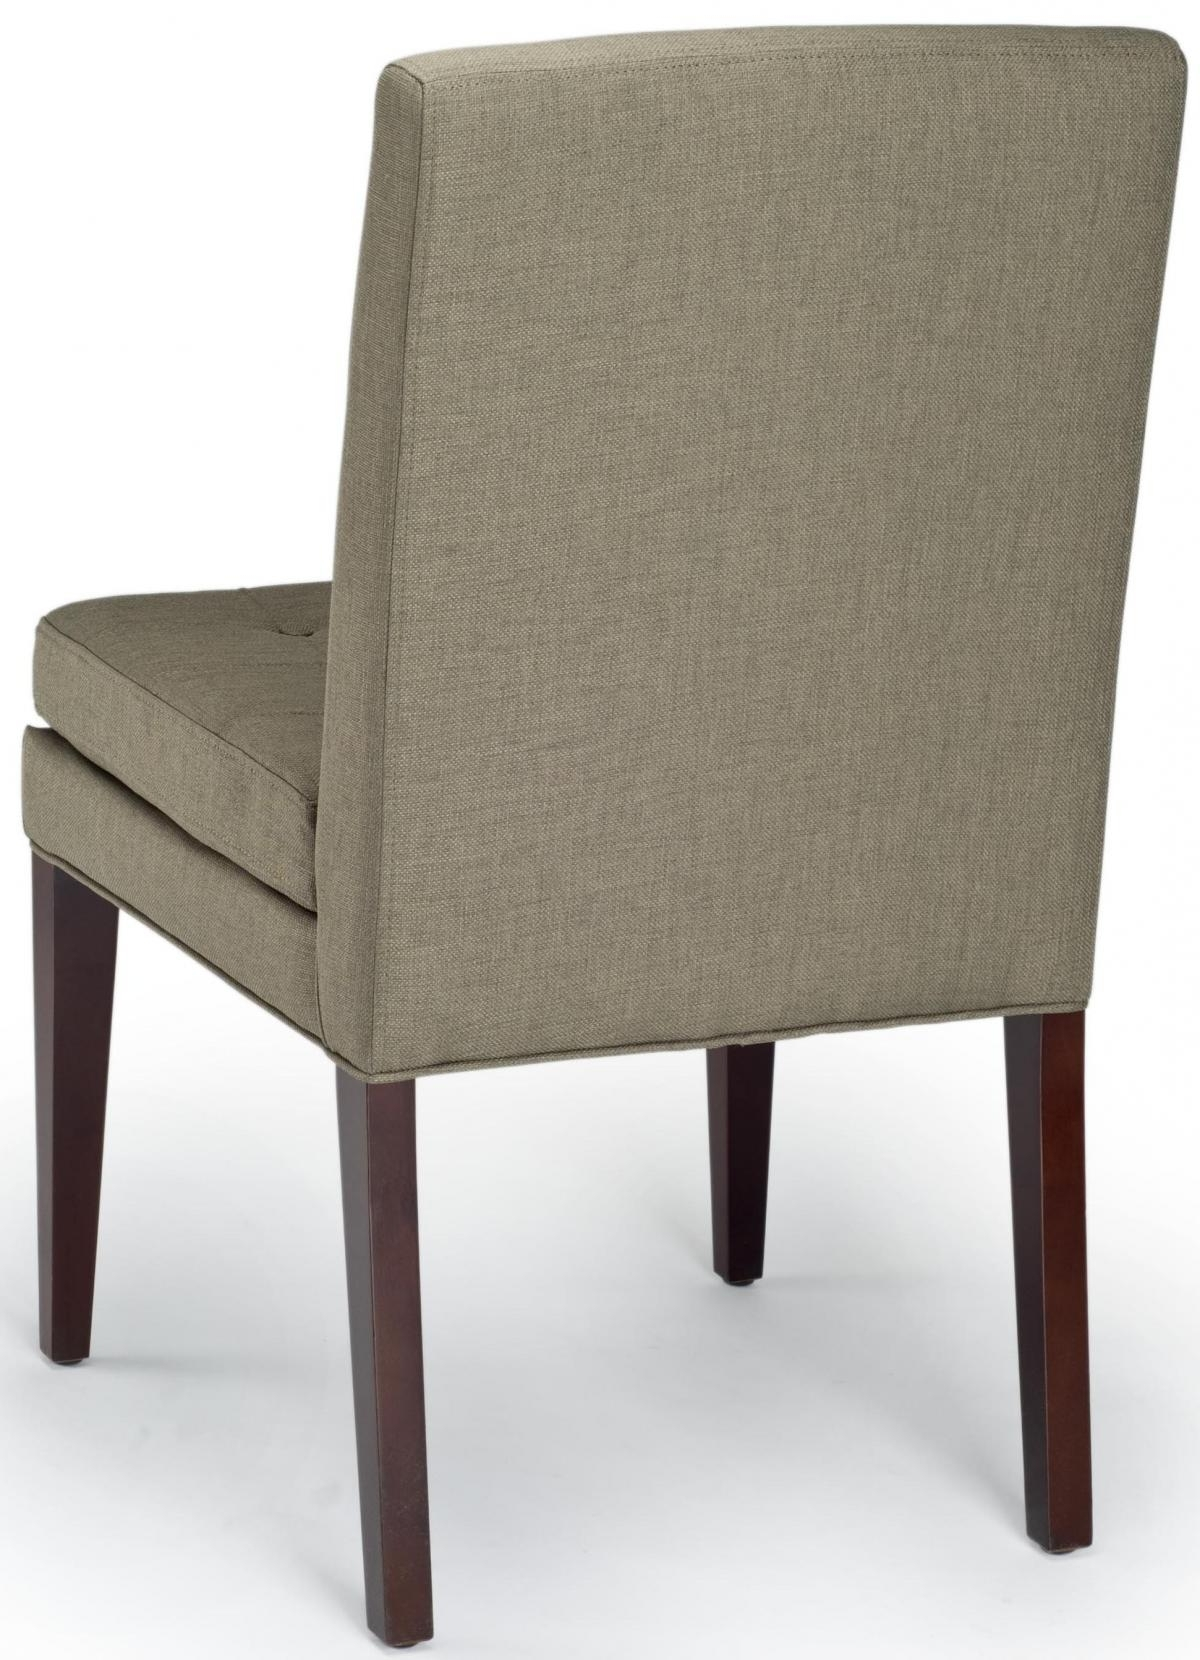 2018 Caira Black Upholstered Side Chairs In Safavieh – Hud8210A Cole Side Chair (Set Of 2) $801.00 – Dining Chairs (Gallery 12 of 20)